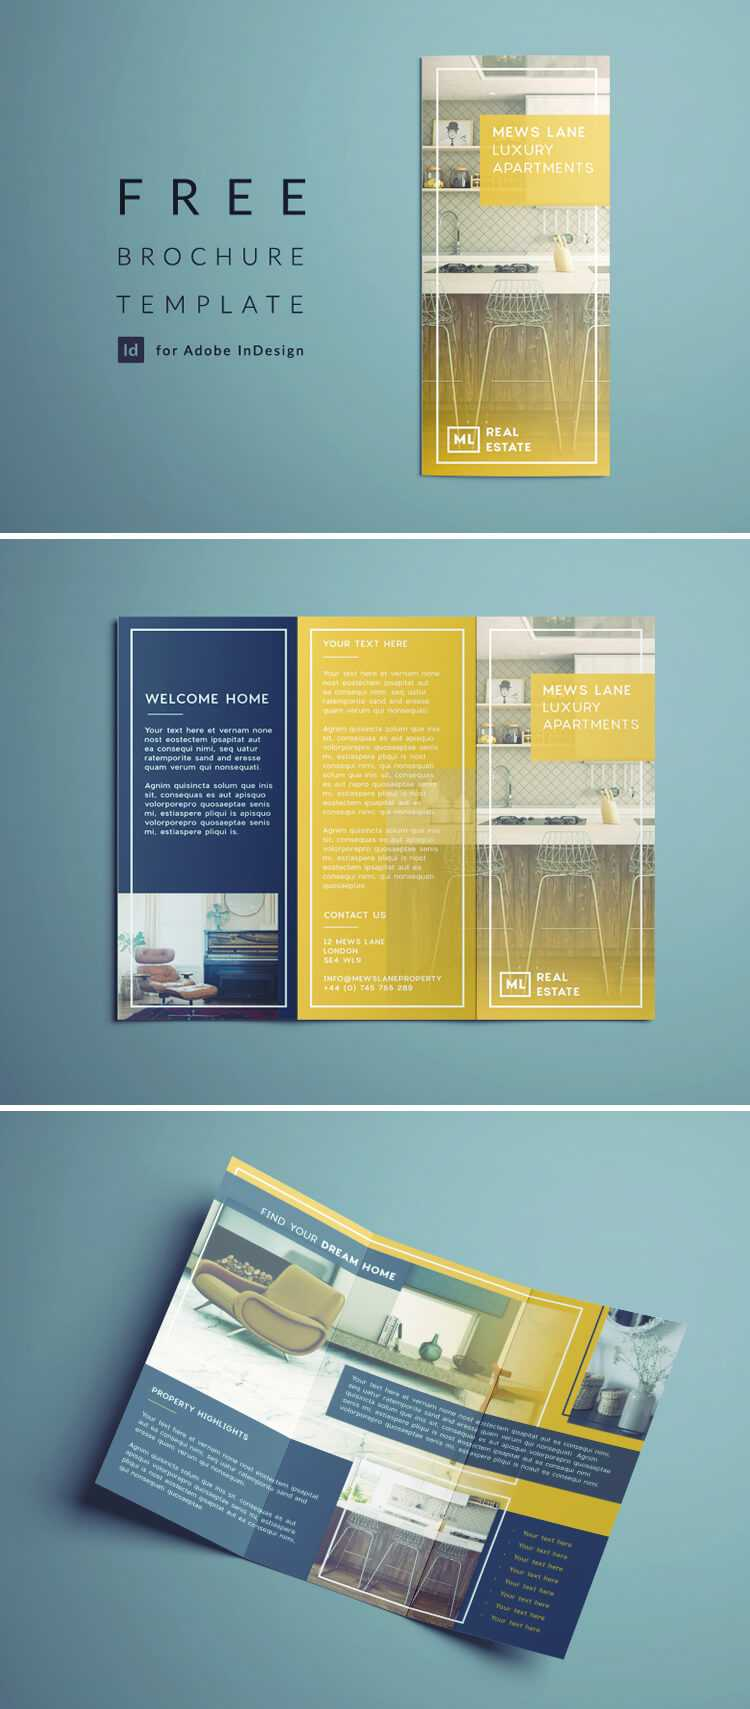 Tri Fold Brochure Template Indesign Free Download pertaining to Brochure Template Indesign Free Download